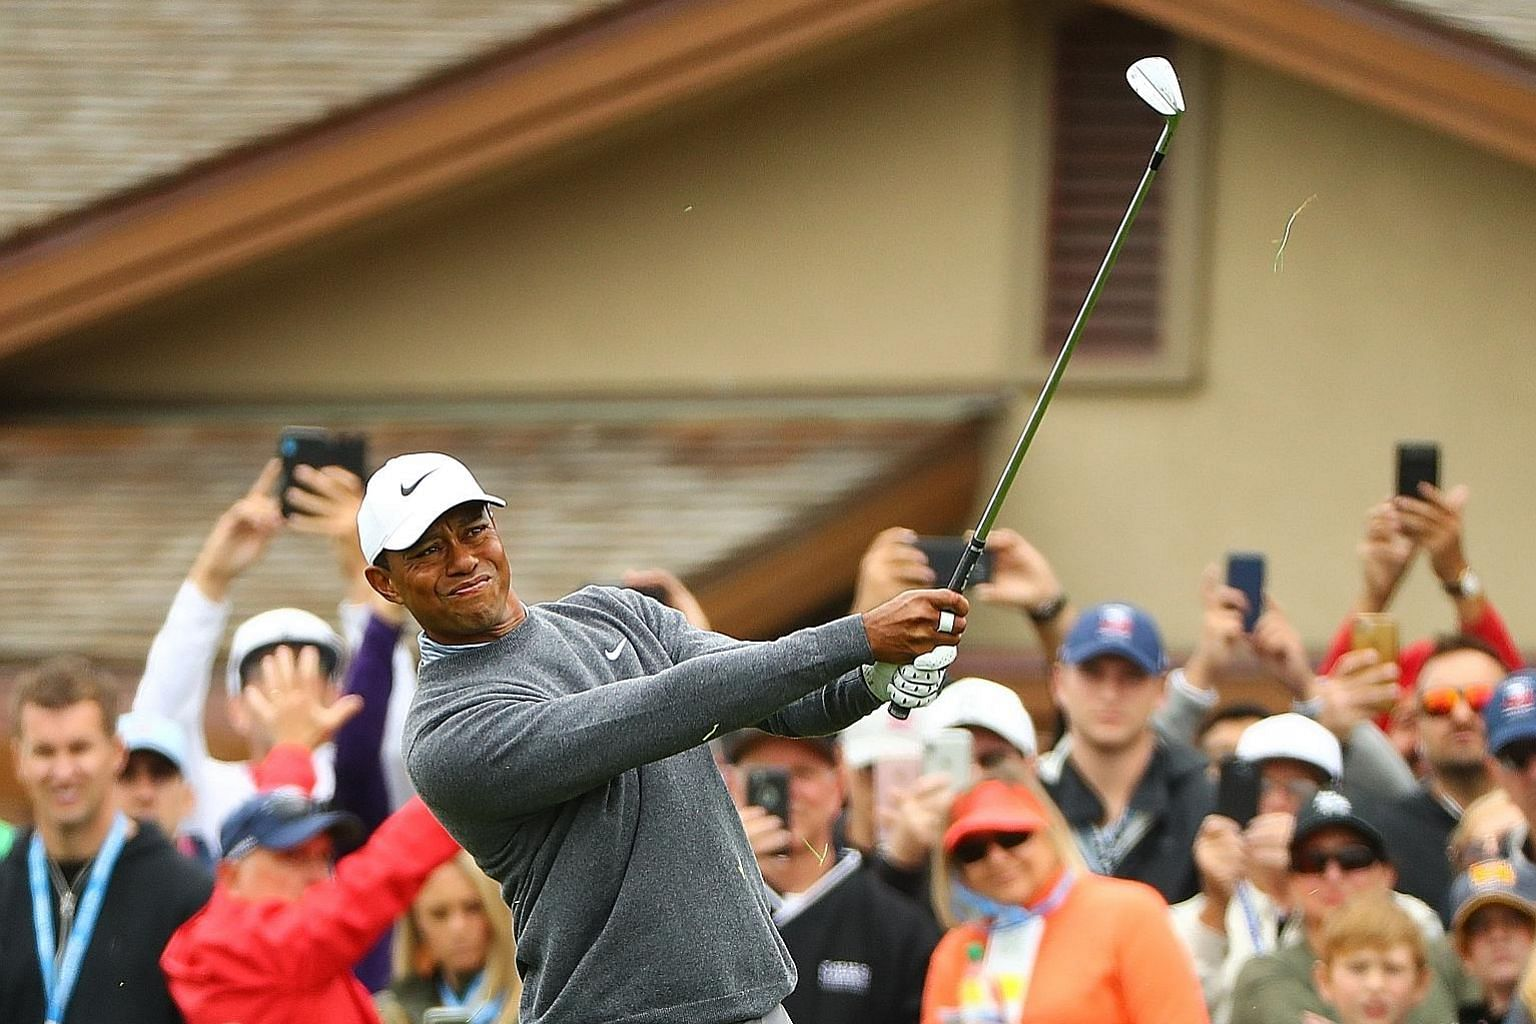 Tiger Woods playing a shot on the first hole in the third round of the US Open on Saturday at Pebble Beach Golf Links. He made bogey - one of five that day. But he mixed it up with five birdies to stand at even-par 213. PHOTO: REUTERS